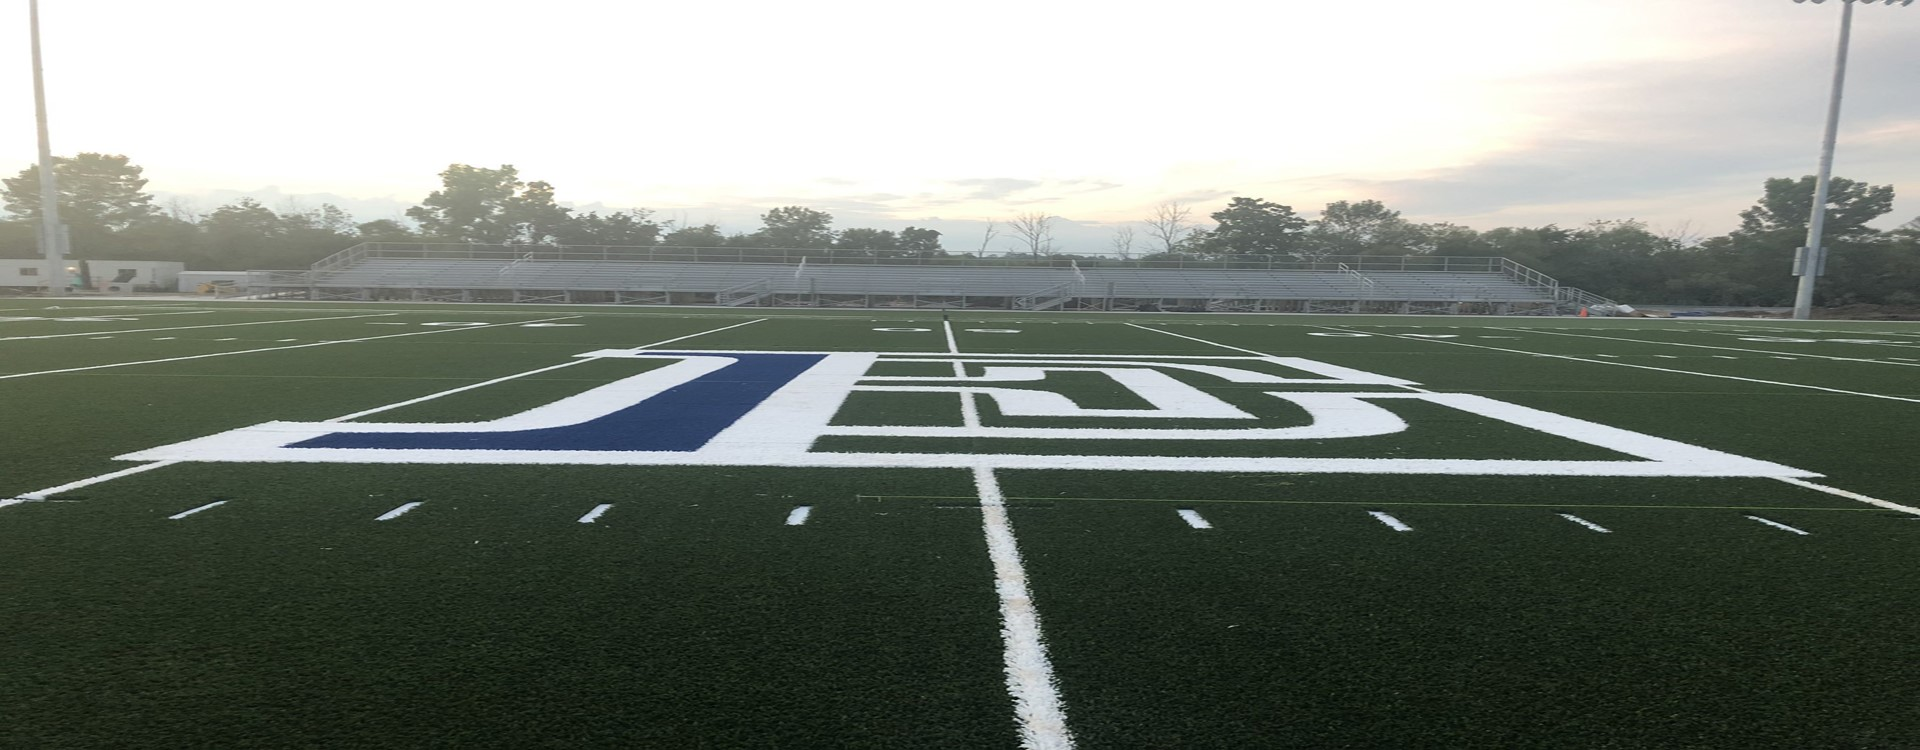 New EJHS Football Field